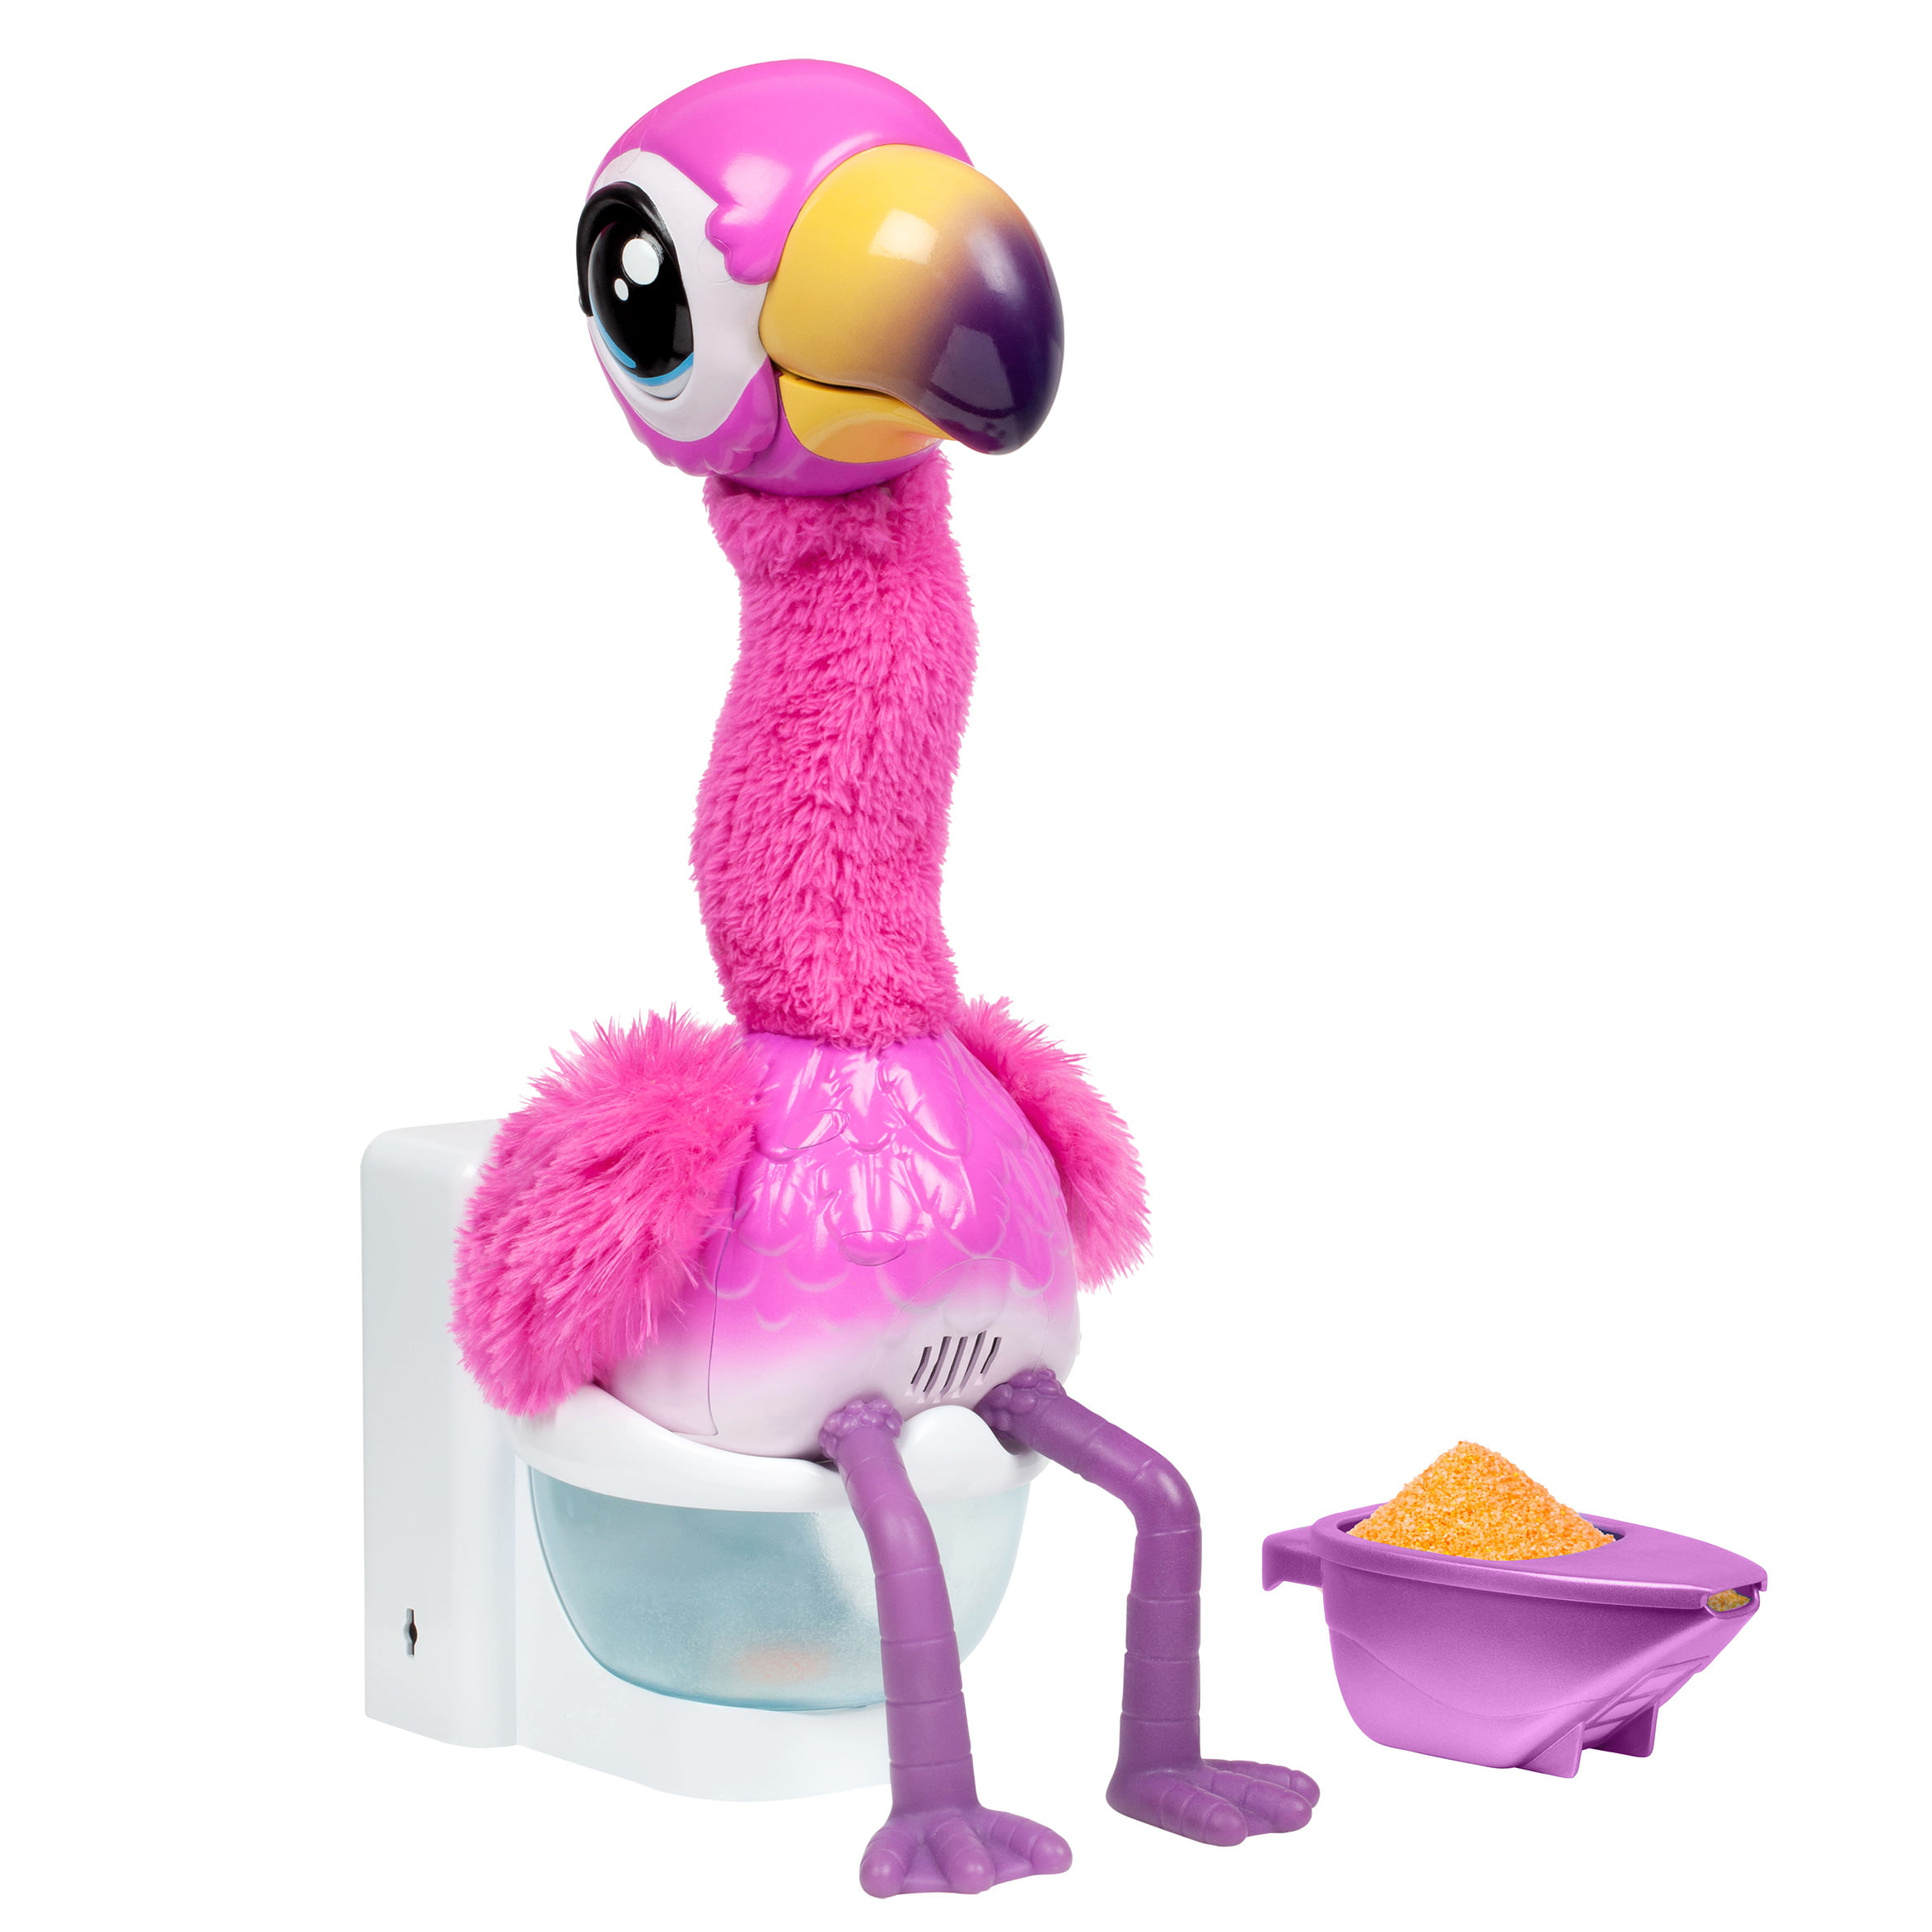 Little Live Pets Gotta Go Flamingo, Singing, Wiggling, & Pooping Toy - Walmart.com